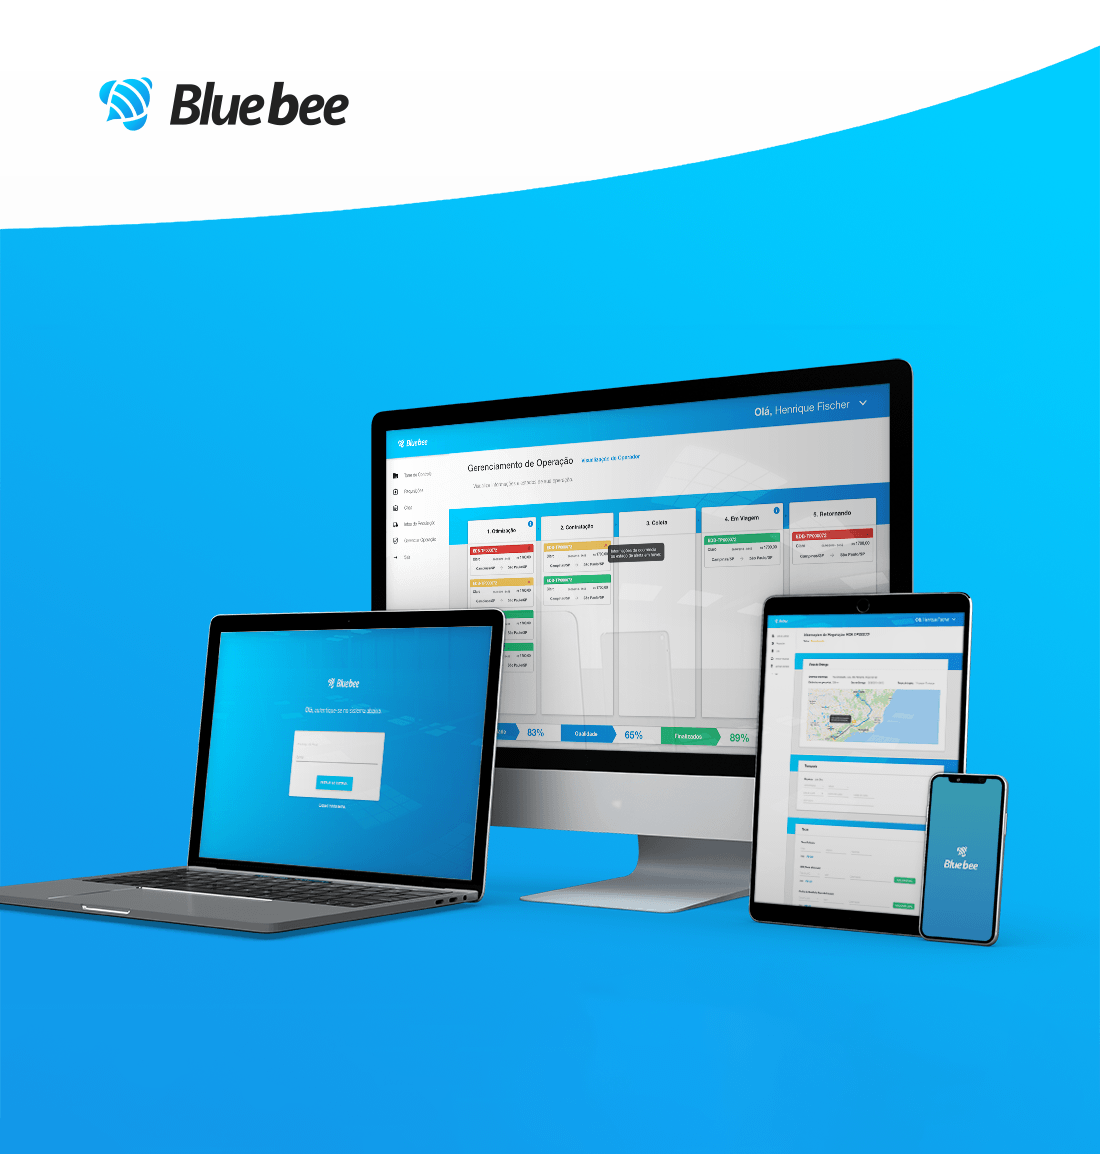 Blueebee - Product Branding, Website and Application Redesign